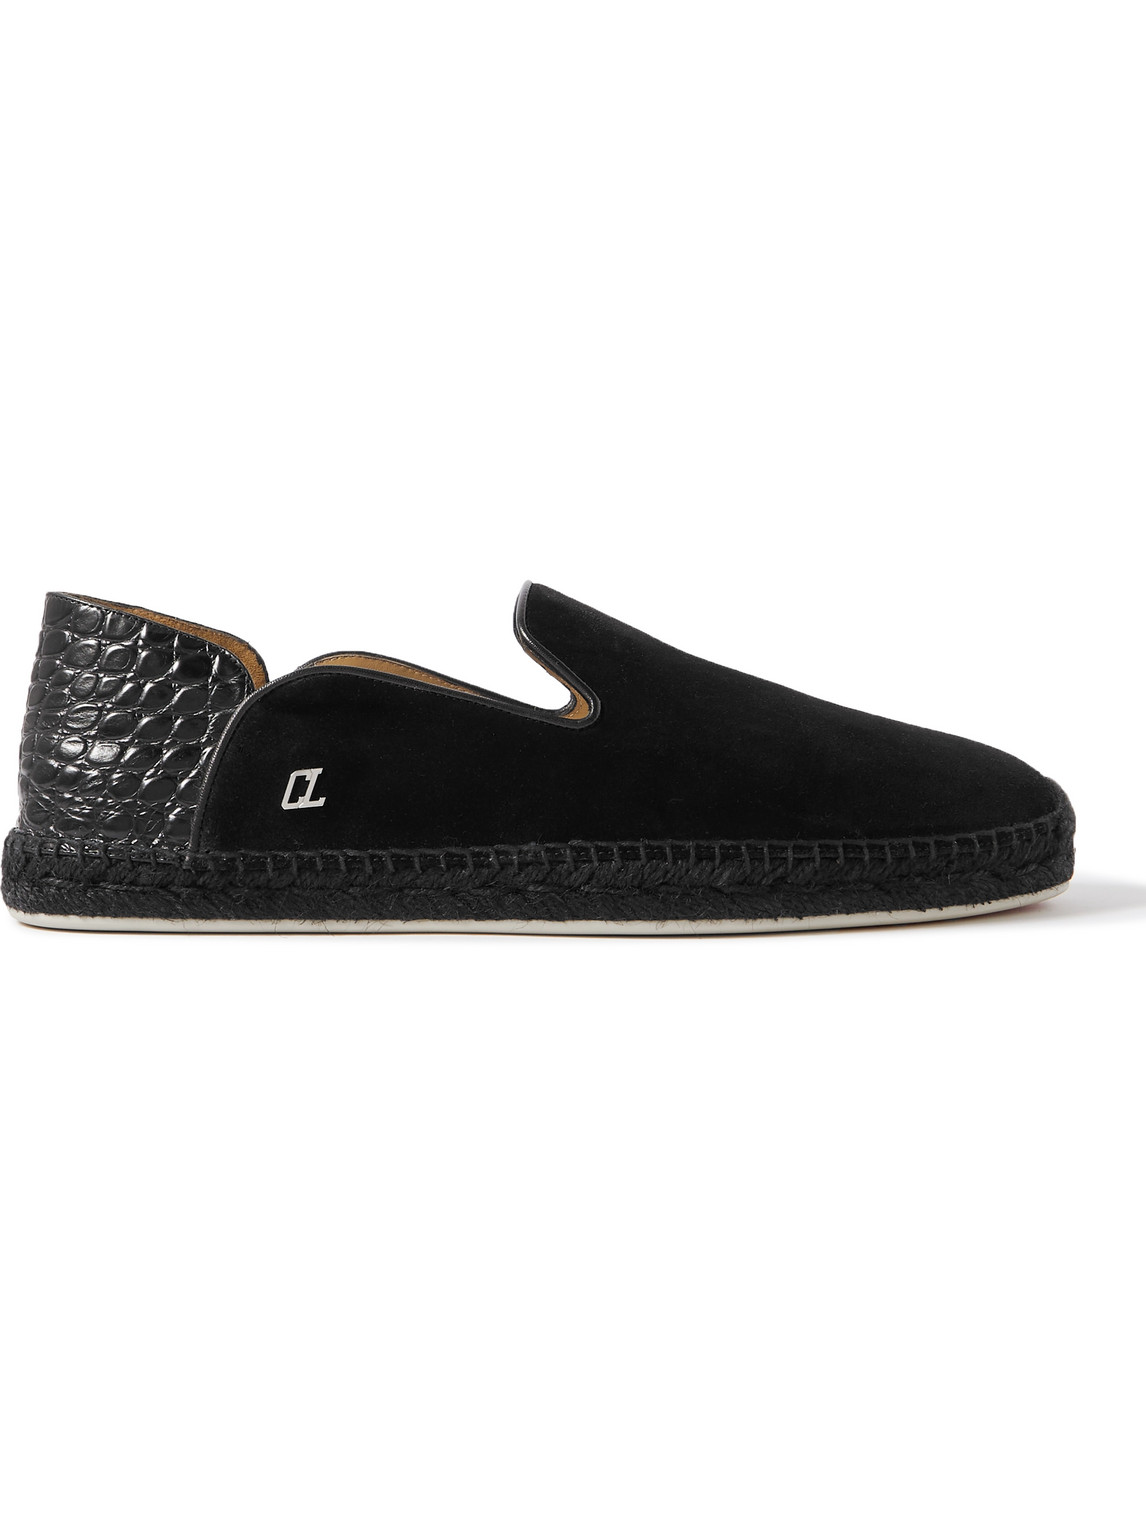 Christian Louboutin Loafers COLLAPSIBLE-HEEL LEATHER-TRIMMED SUEDE ESPADRILLES